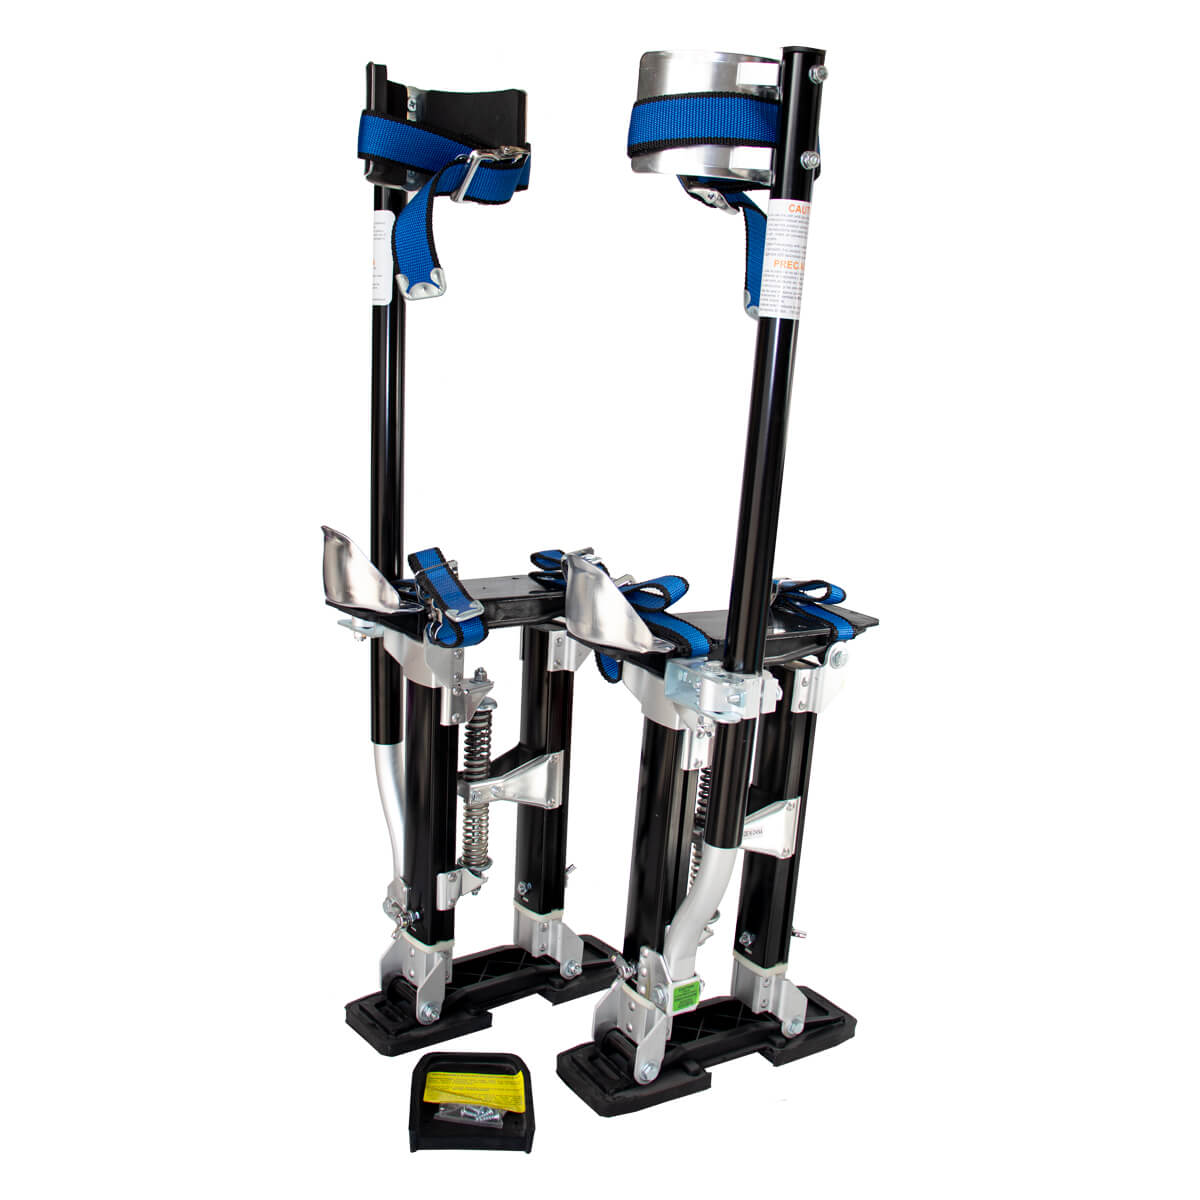 Stilts Adjustable Medium 450-750mm